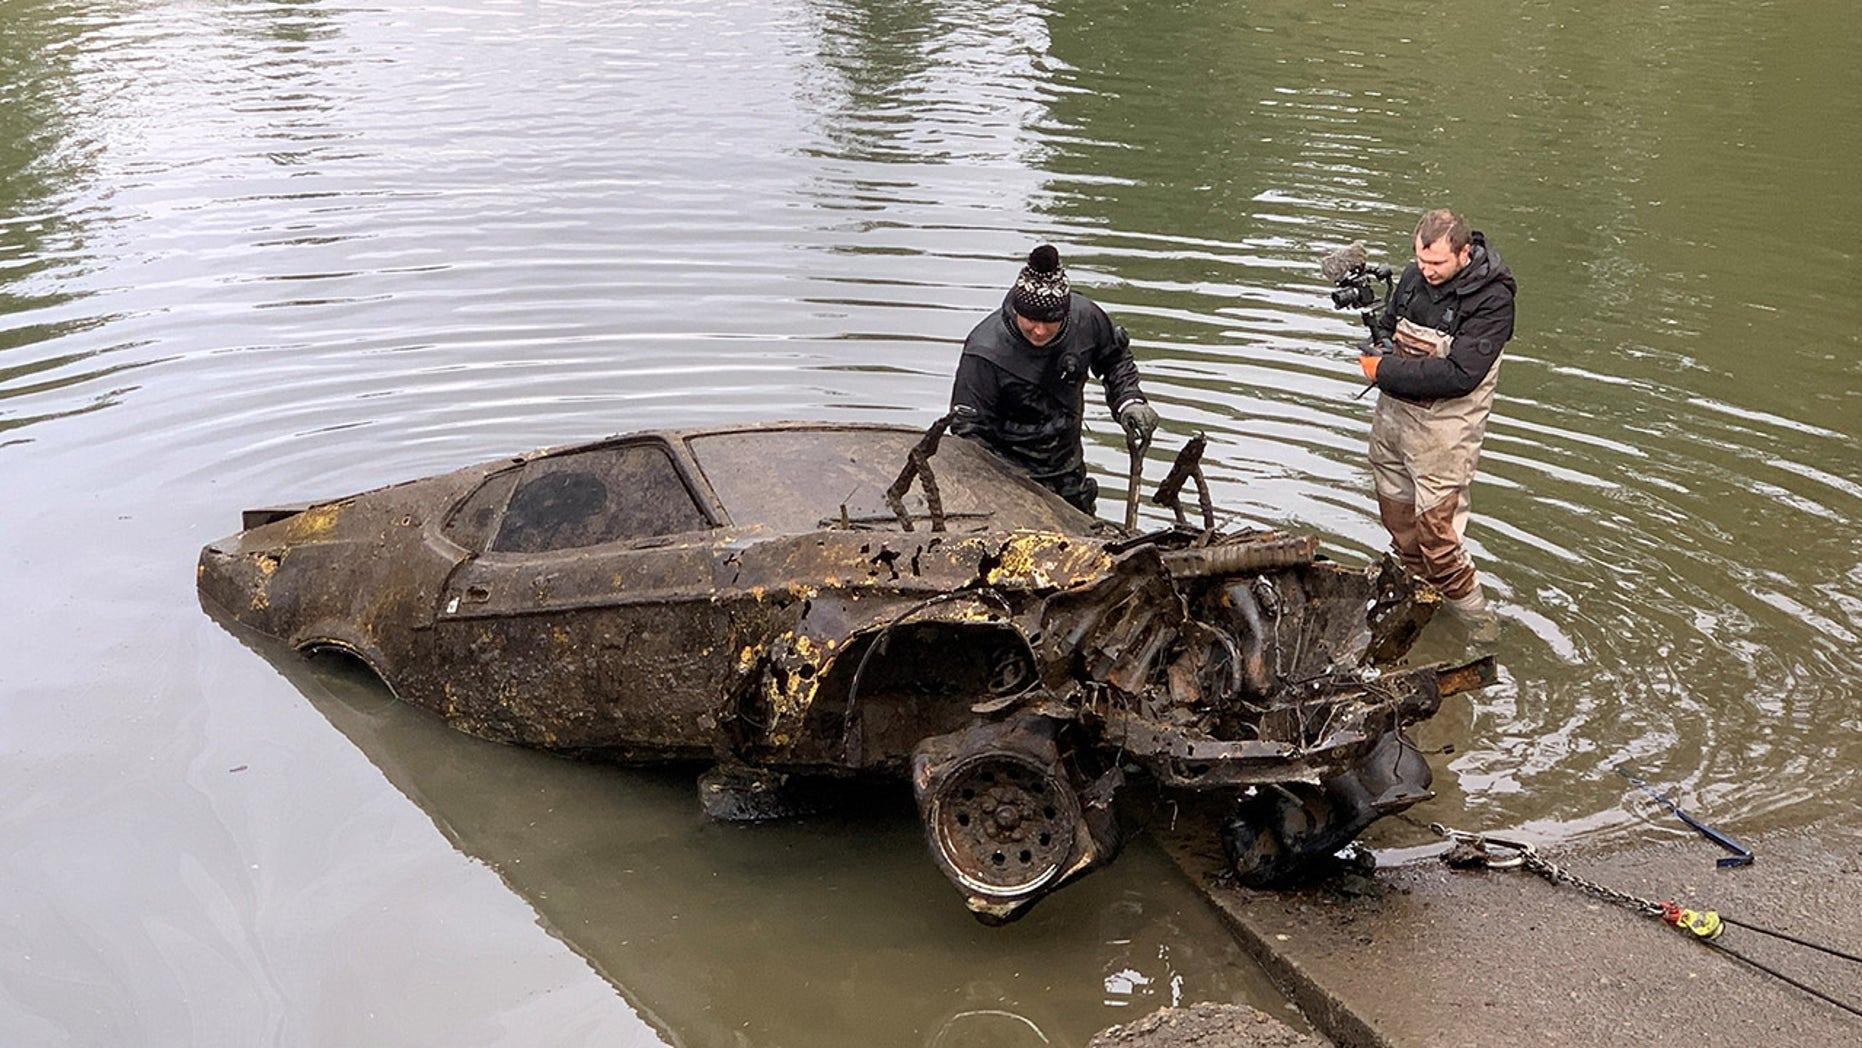 Divers find 9 cars dumped in Portland river : The Motor Masters